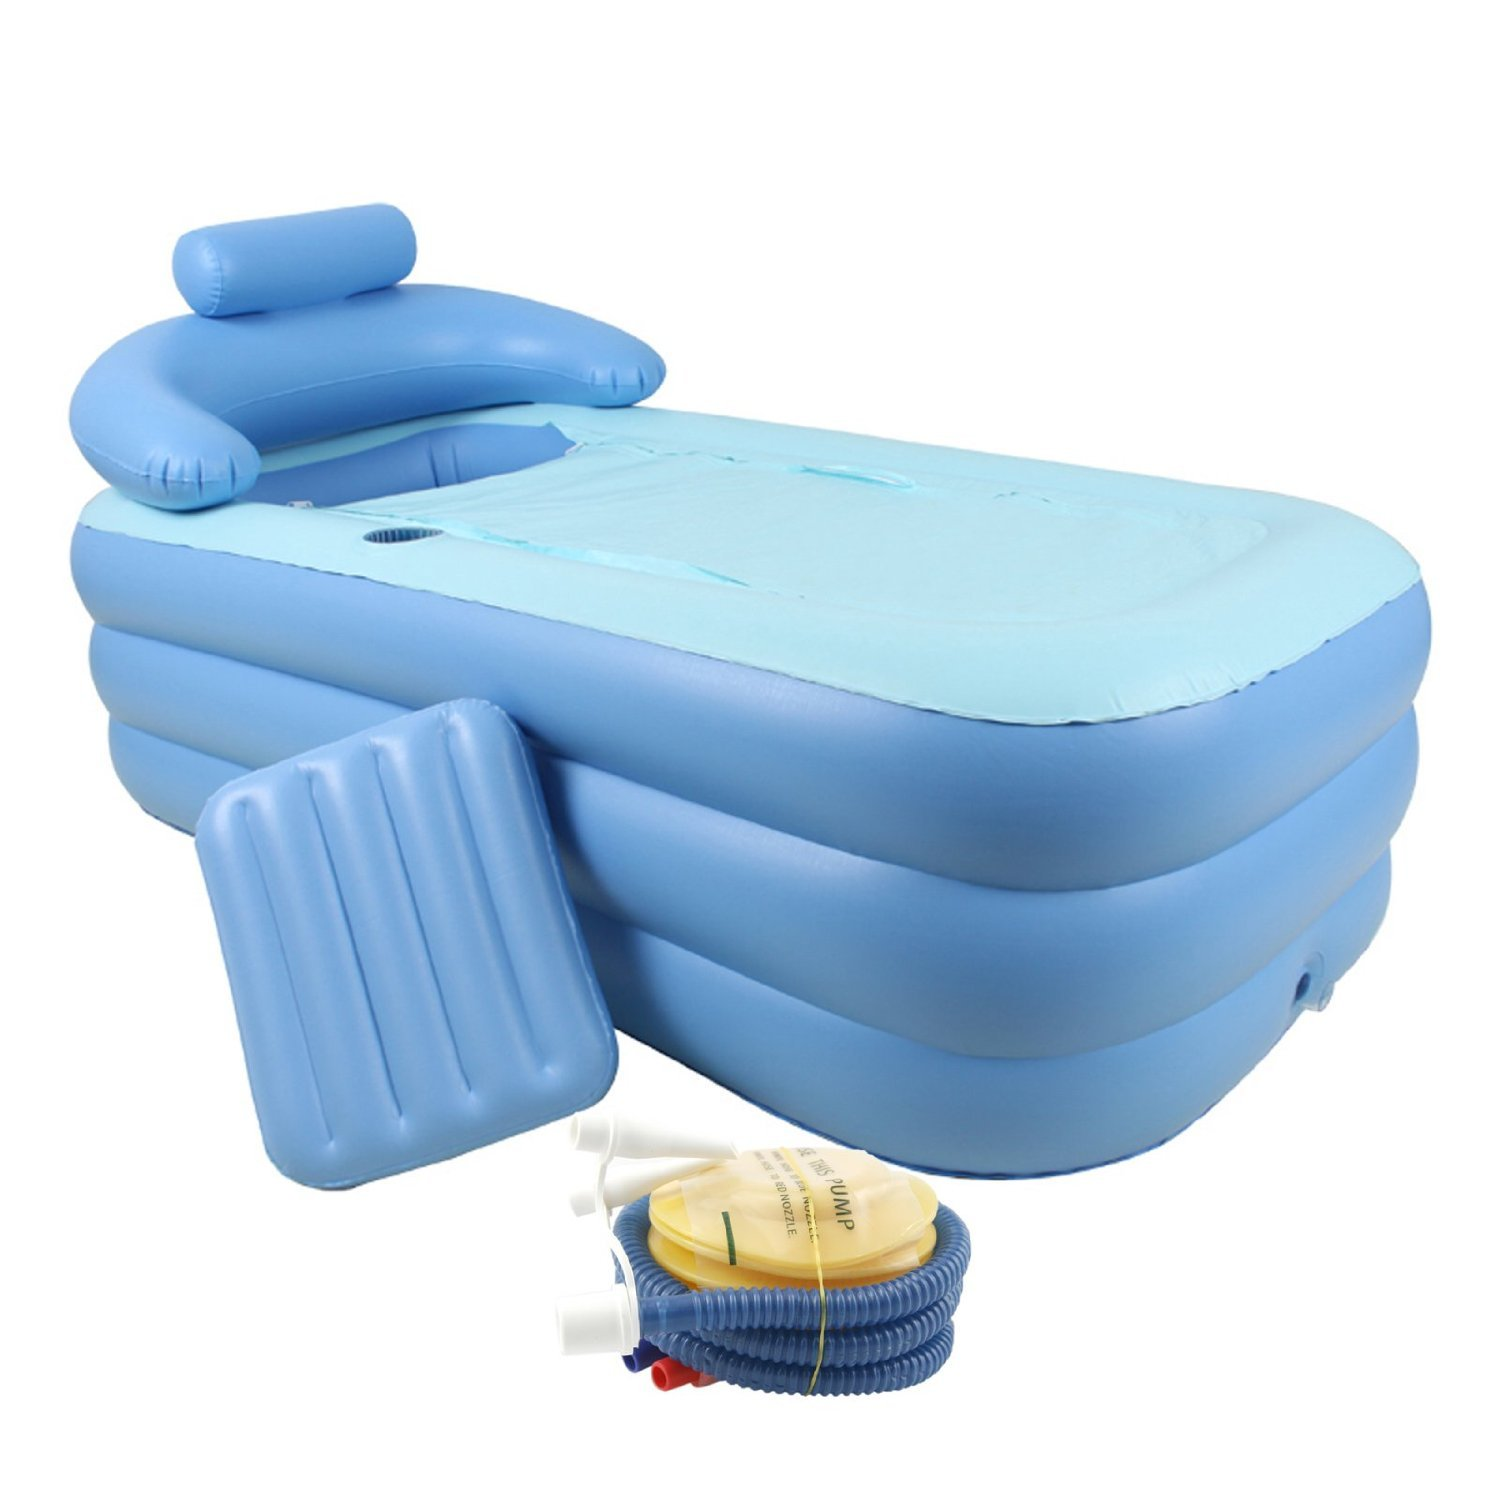 Amazon.com : CO Z Adult PVC Portable Folding Inflatable Bath Tub With Air  Pump For Family Bathroom SPA (Bathtub+Foot Air Pump) : Sports U0026 Outdoors